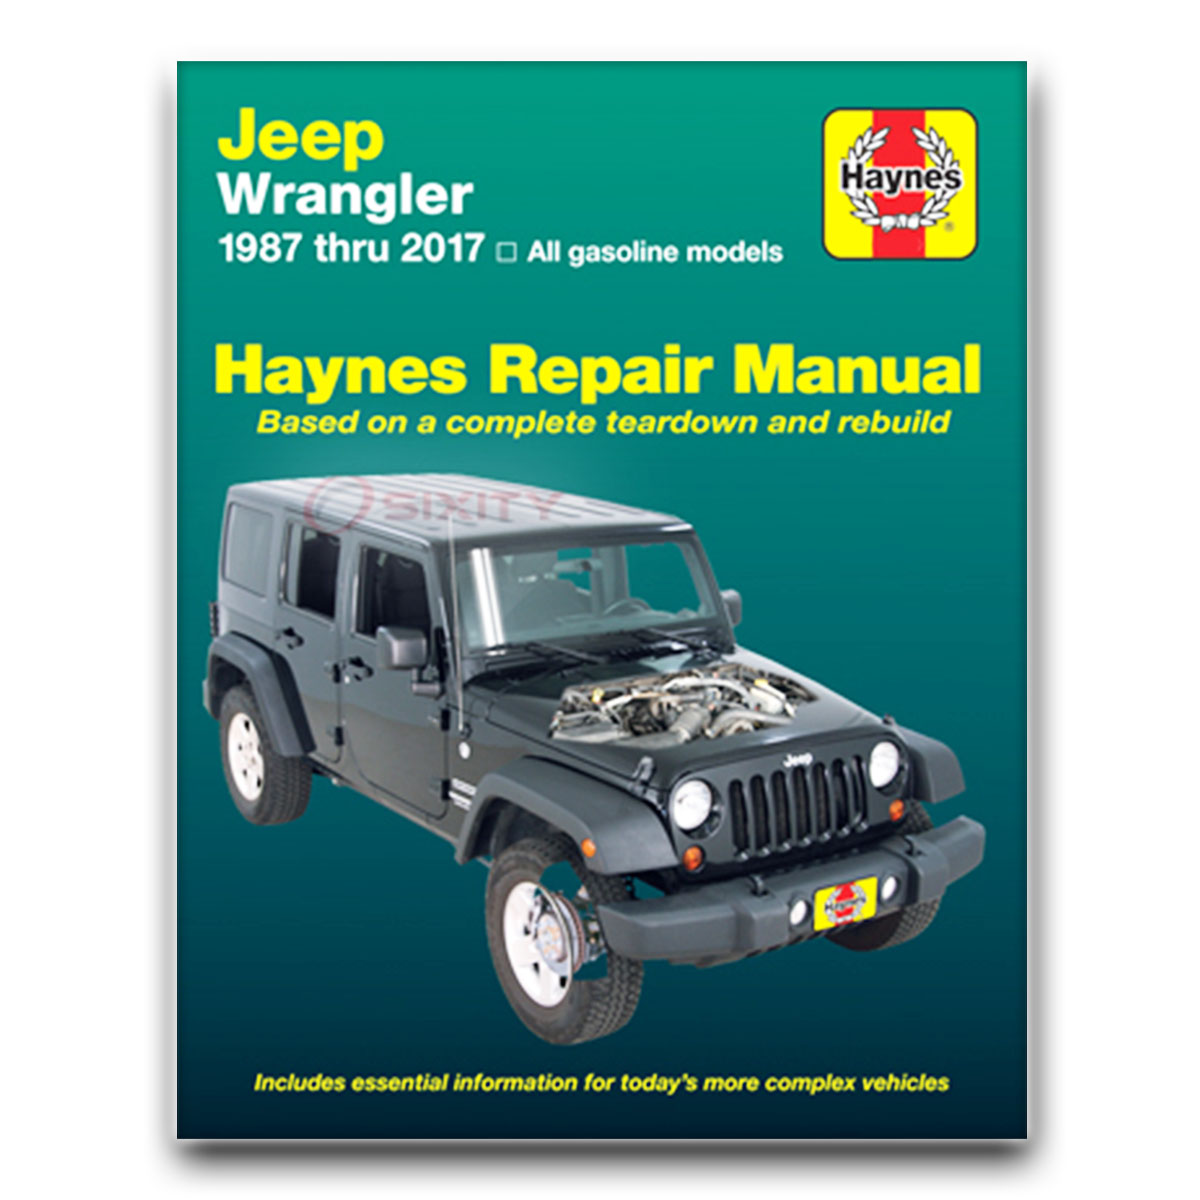 2005 Jeep Wrangler Unlimited Repair Manual User Manual Guide U2022 Rh Alt  School Life Com 2004 Jeep Wrangler Repair Manual 2004 Jeep Wrangler Repair  Manual ...